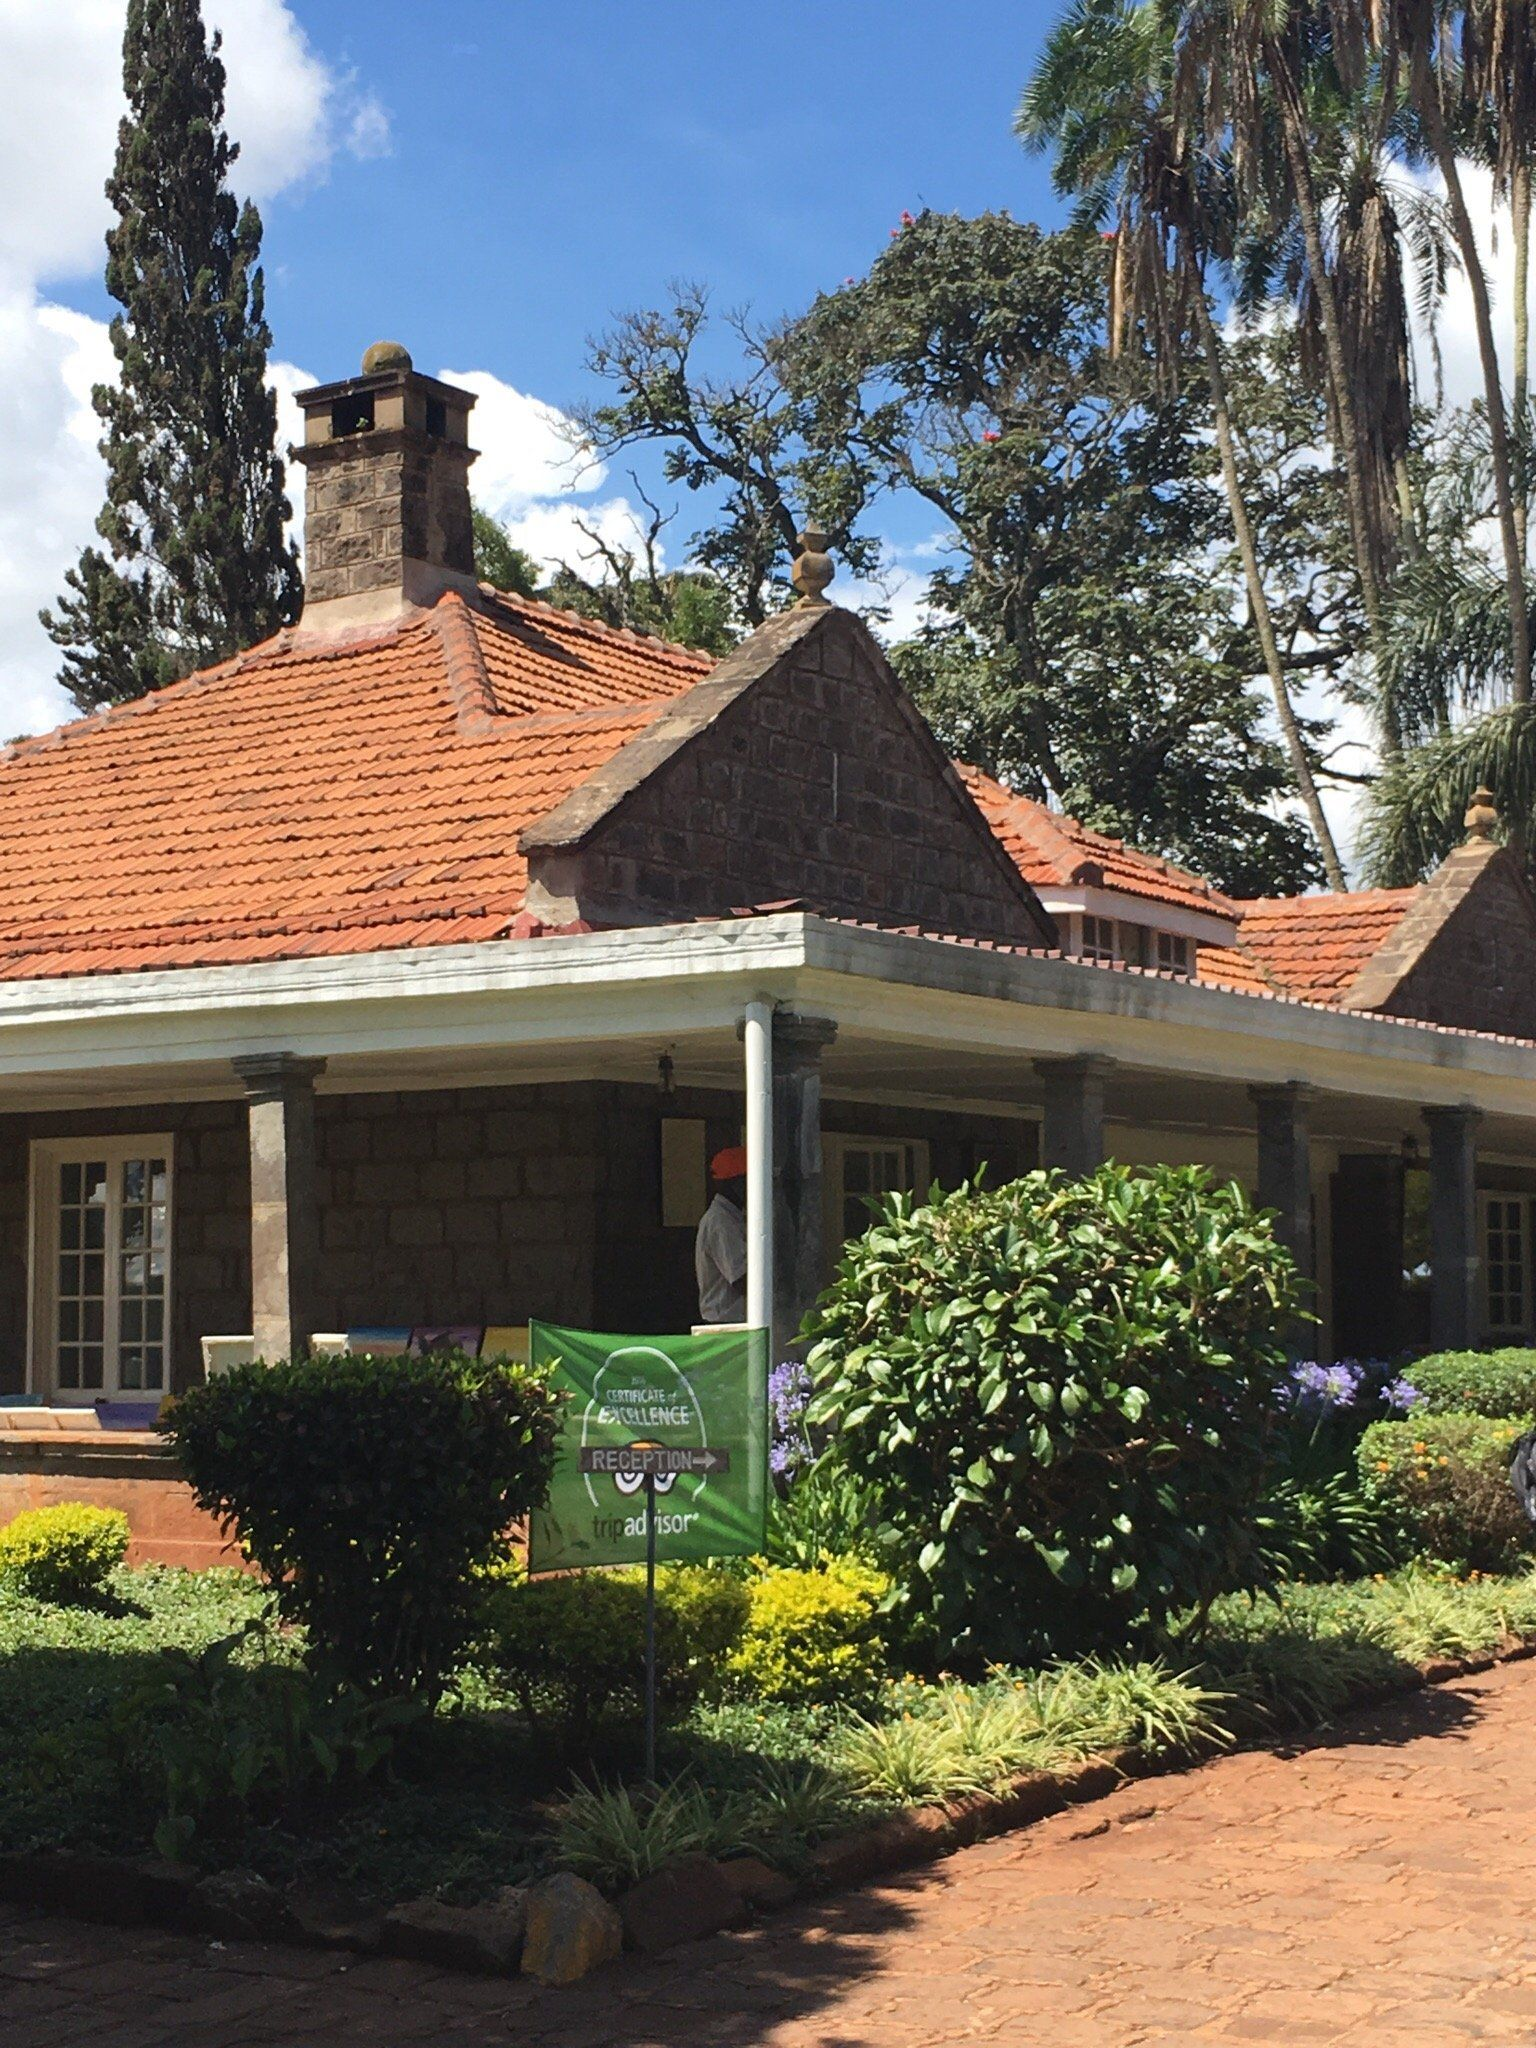 Karen blixen museum nairobi kenya top tips before you go tripadvisor